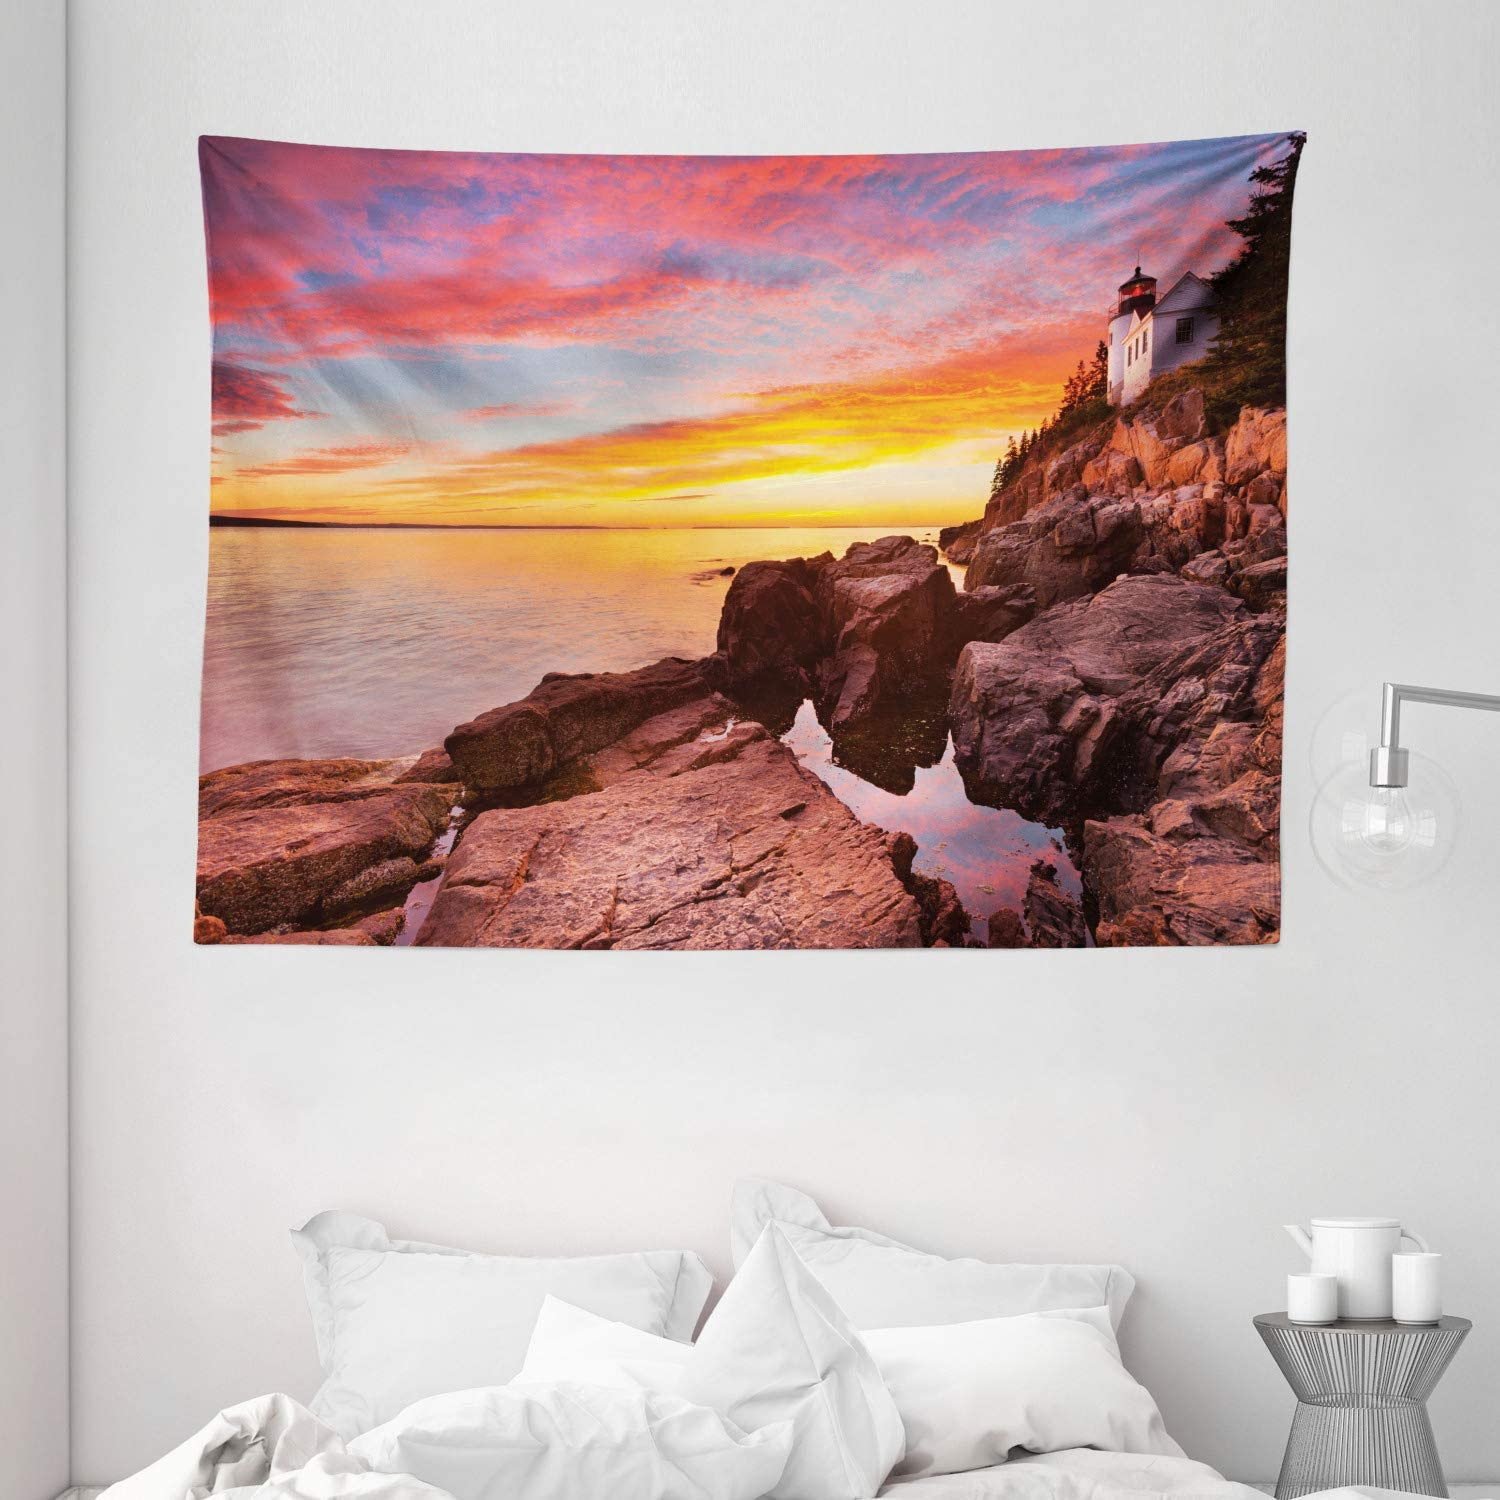 Ambesonne National Parks Home Decor Tapestry, Lighthouse on The Harbor Sea Shore with Horizon Sky New England Design, Wall Hanging for Bedroom Living Room Dorm, 80 W X 60 L Inches, Multi